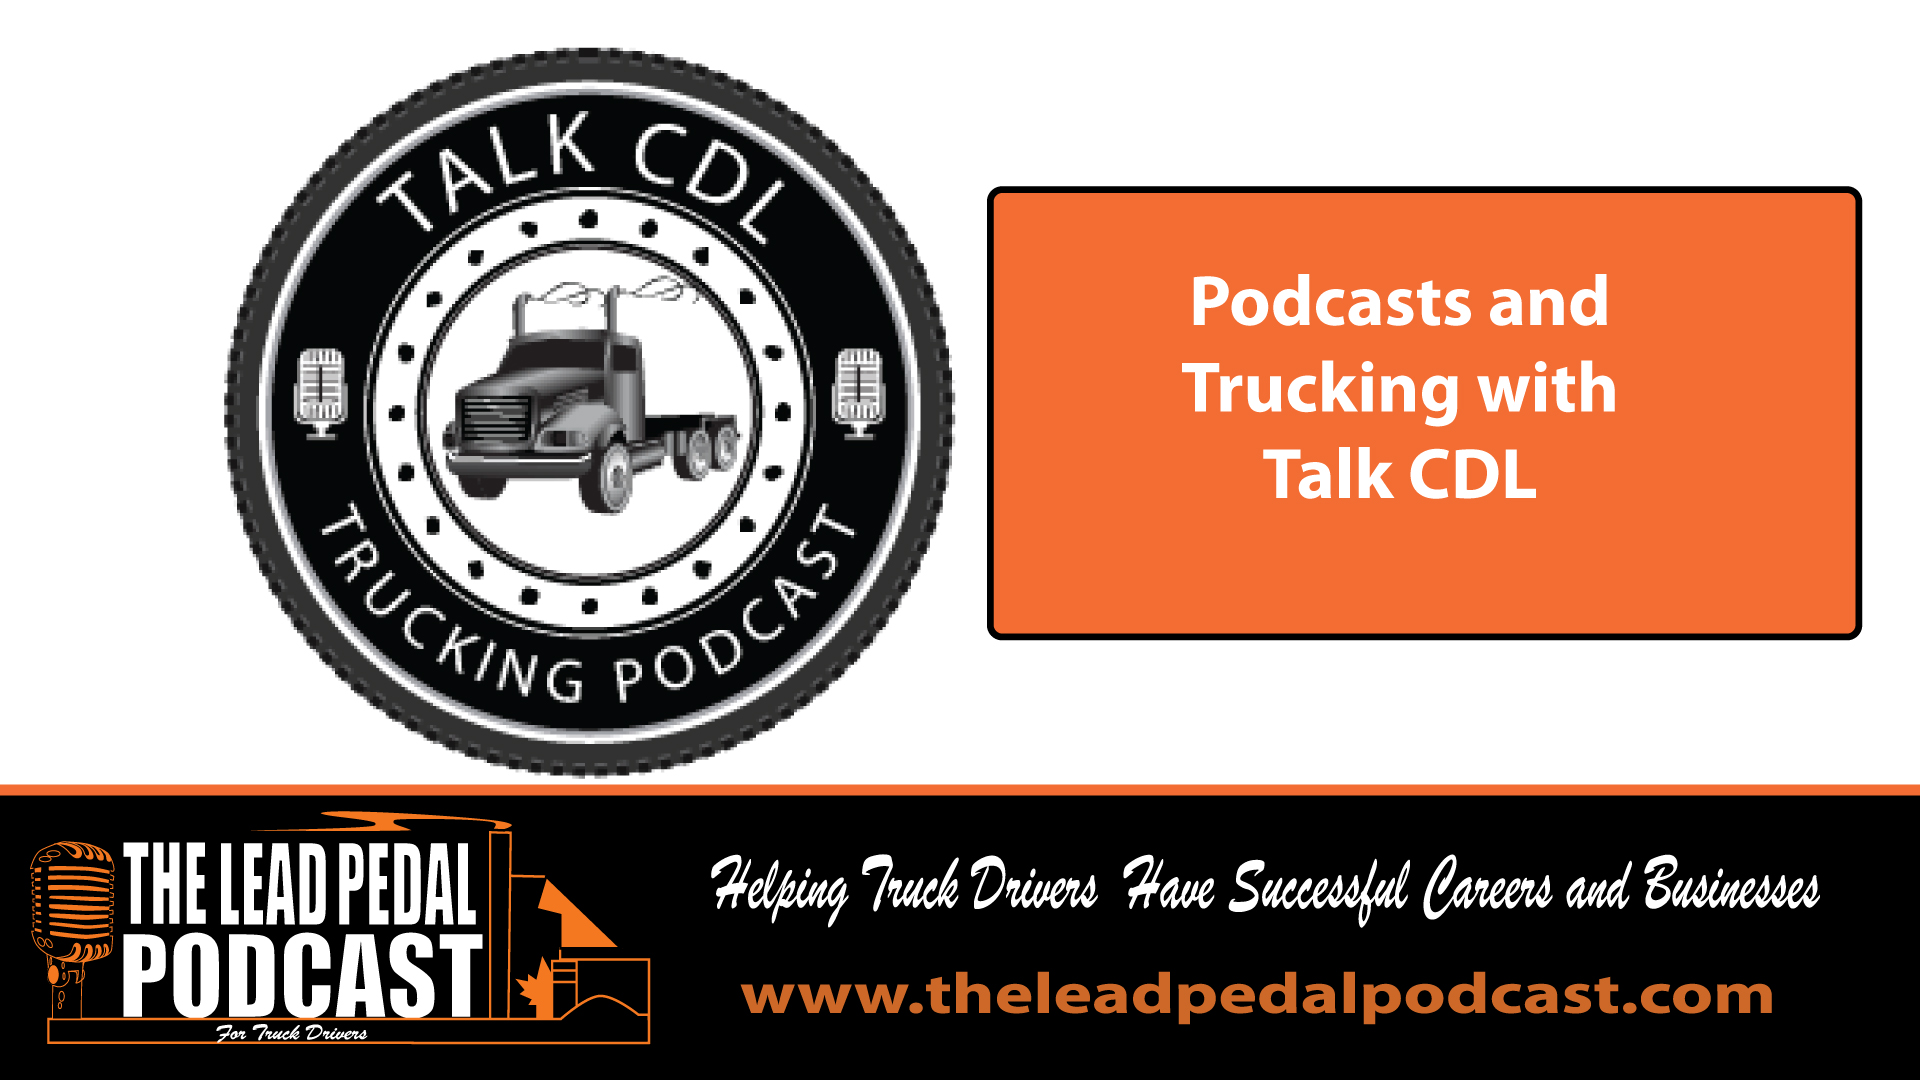 The Lead Pedal Podcast for Truck Drivers: LP298 Talking Trucking